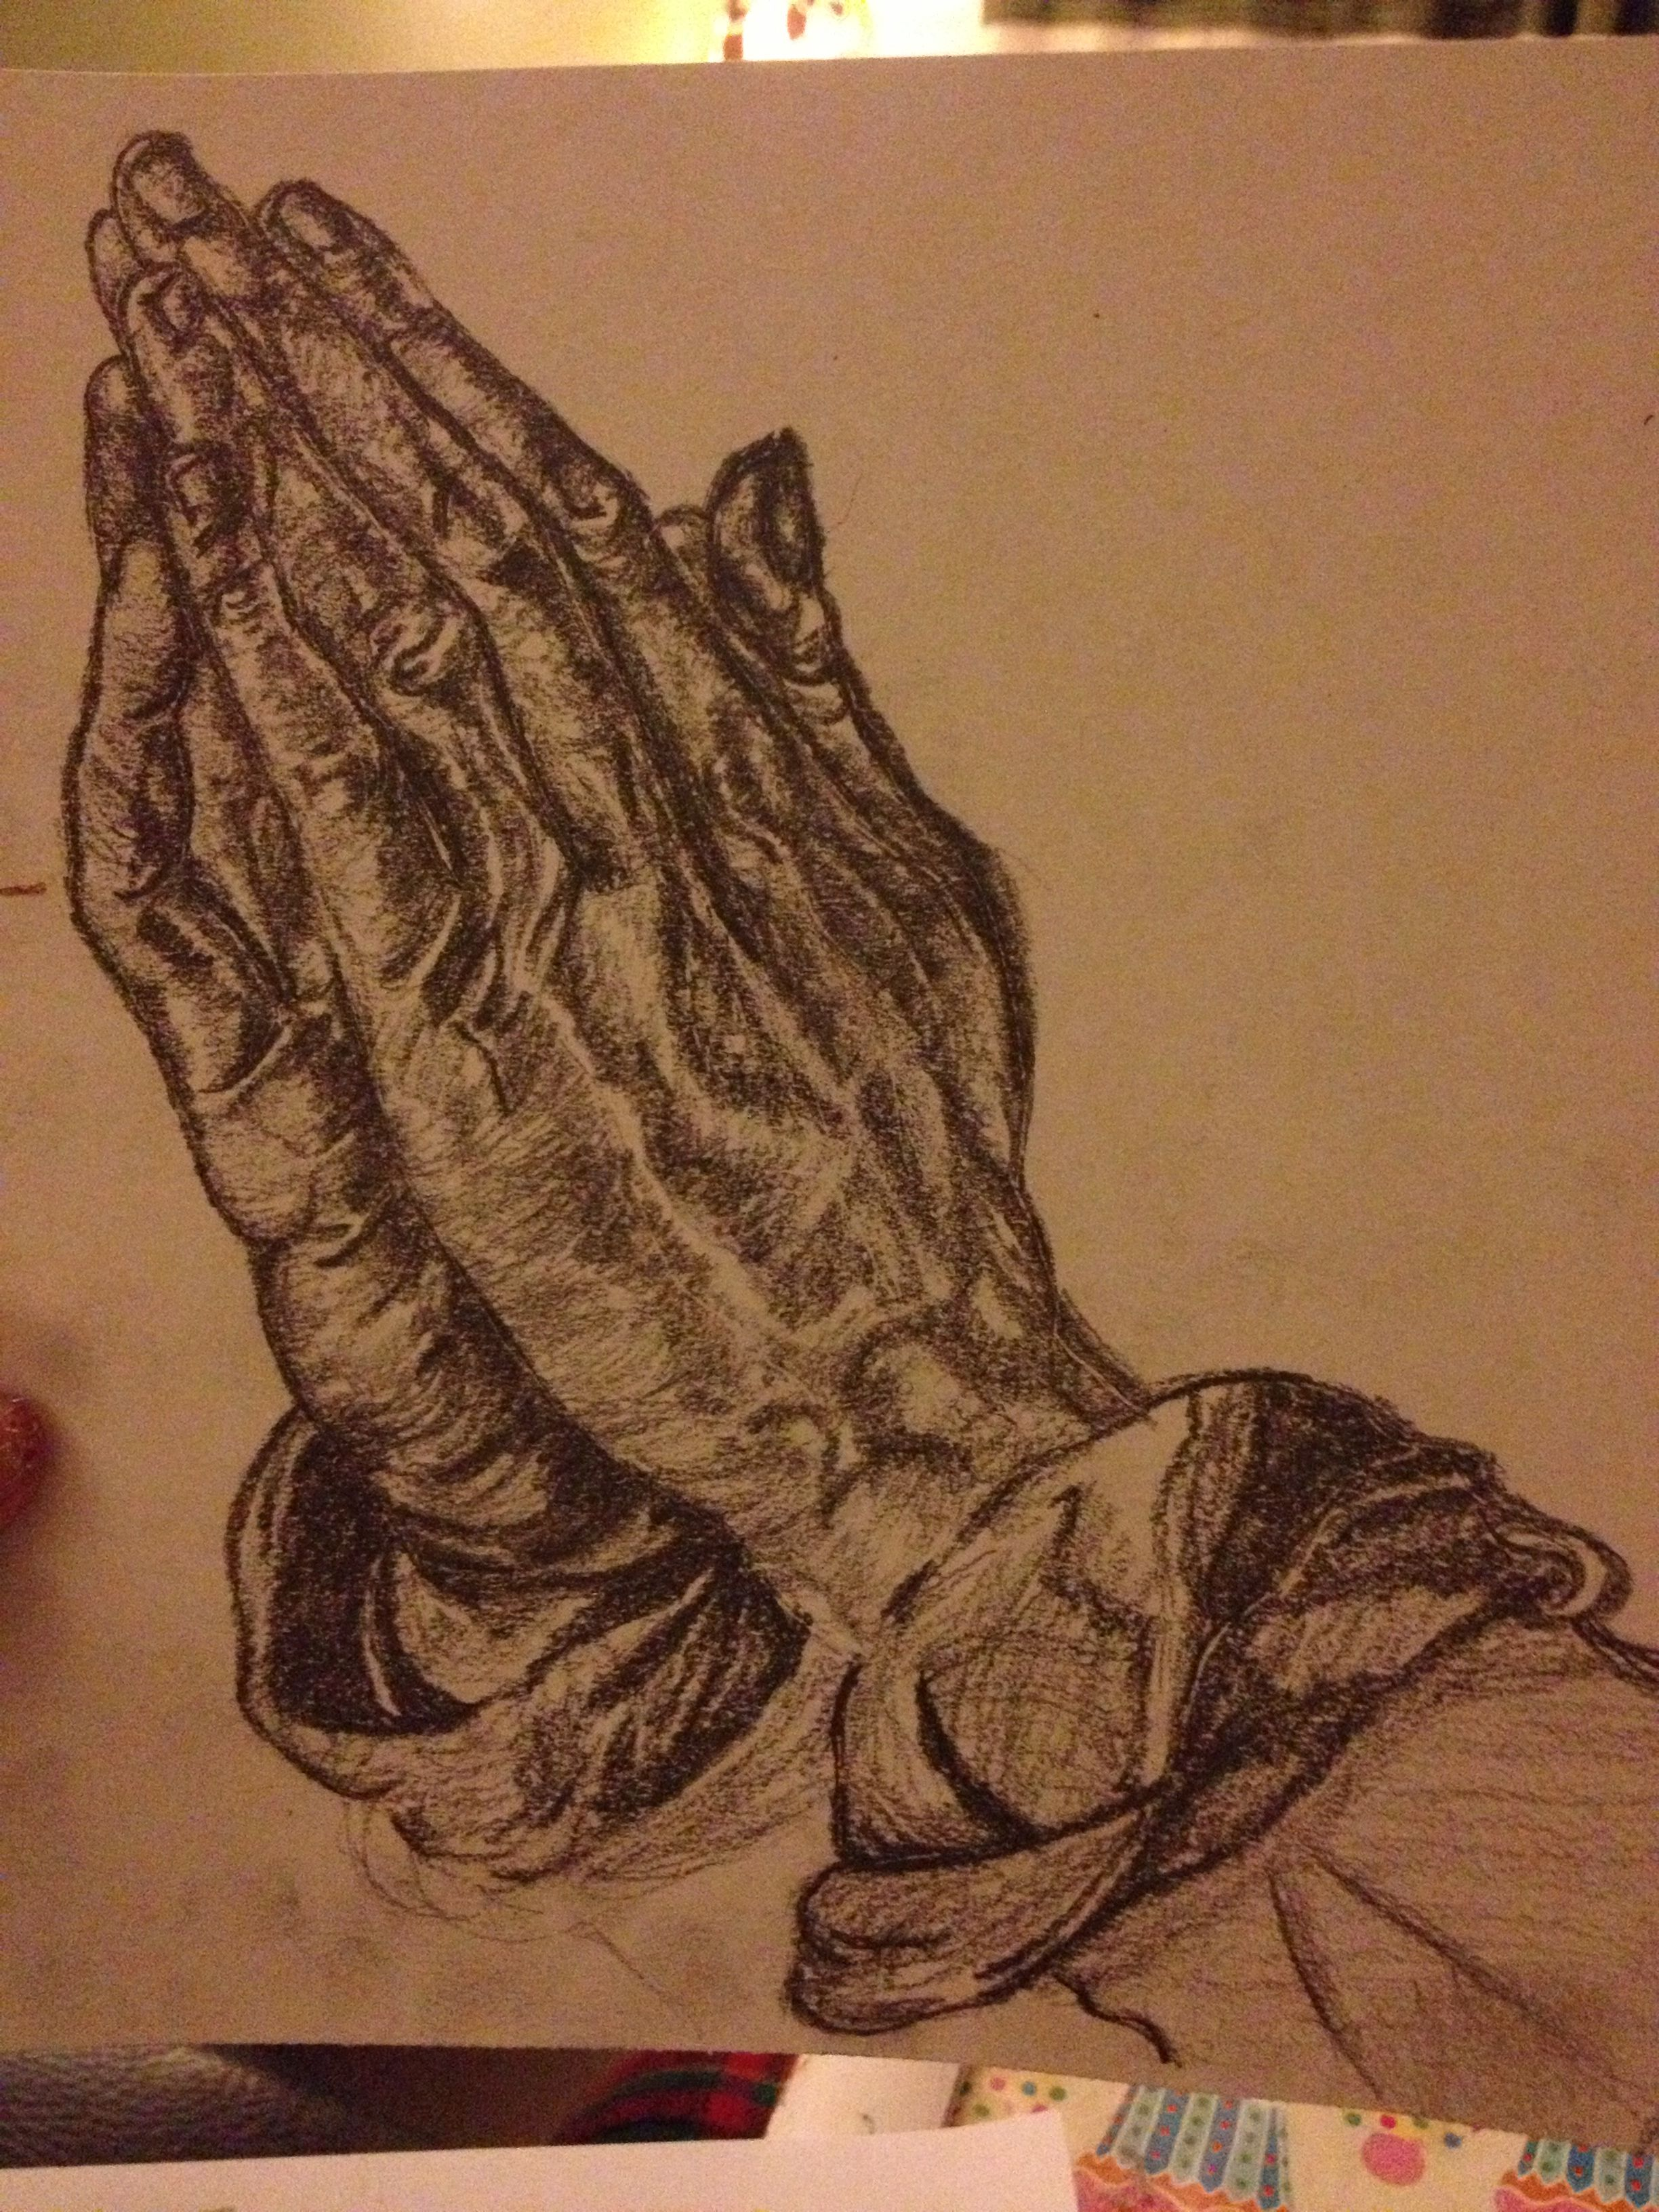 #drawing #pencil #praying #hands | Drawings, Art, Artwork